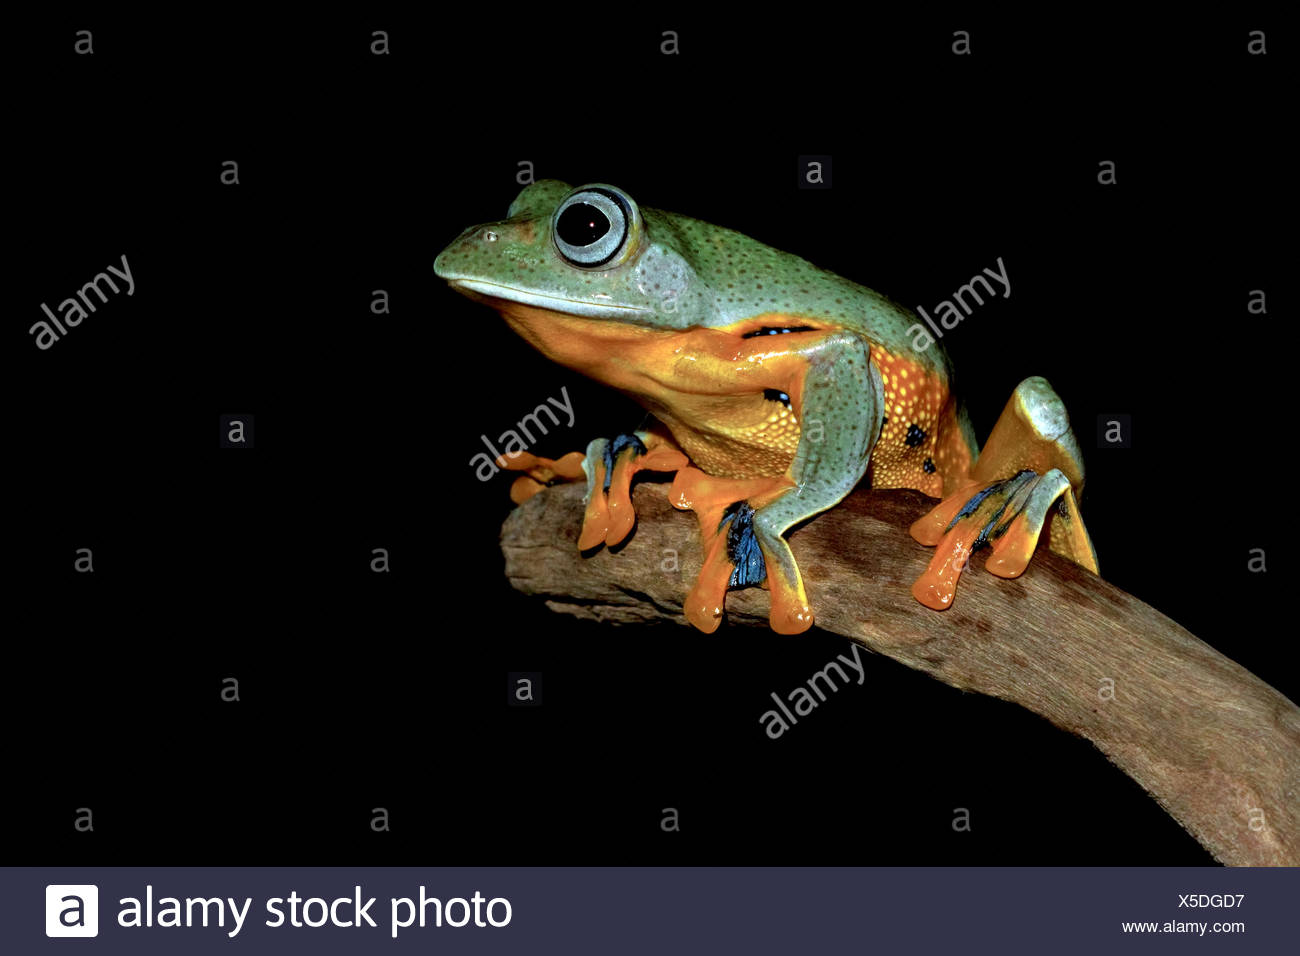 Portrait of a frog sitting on a branch Stock Photo